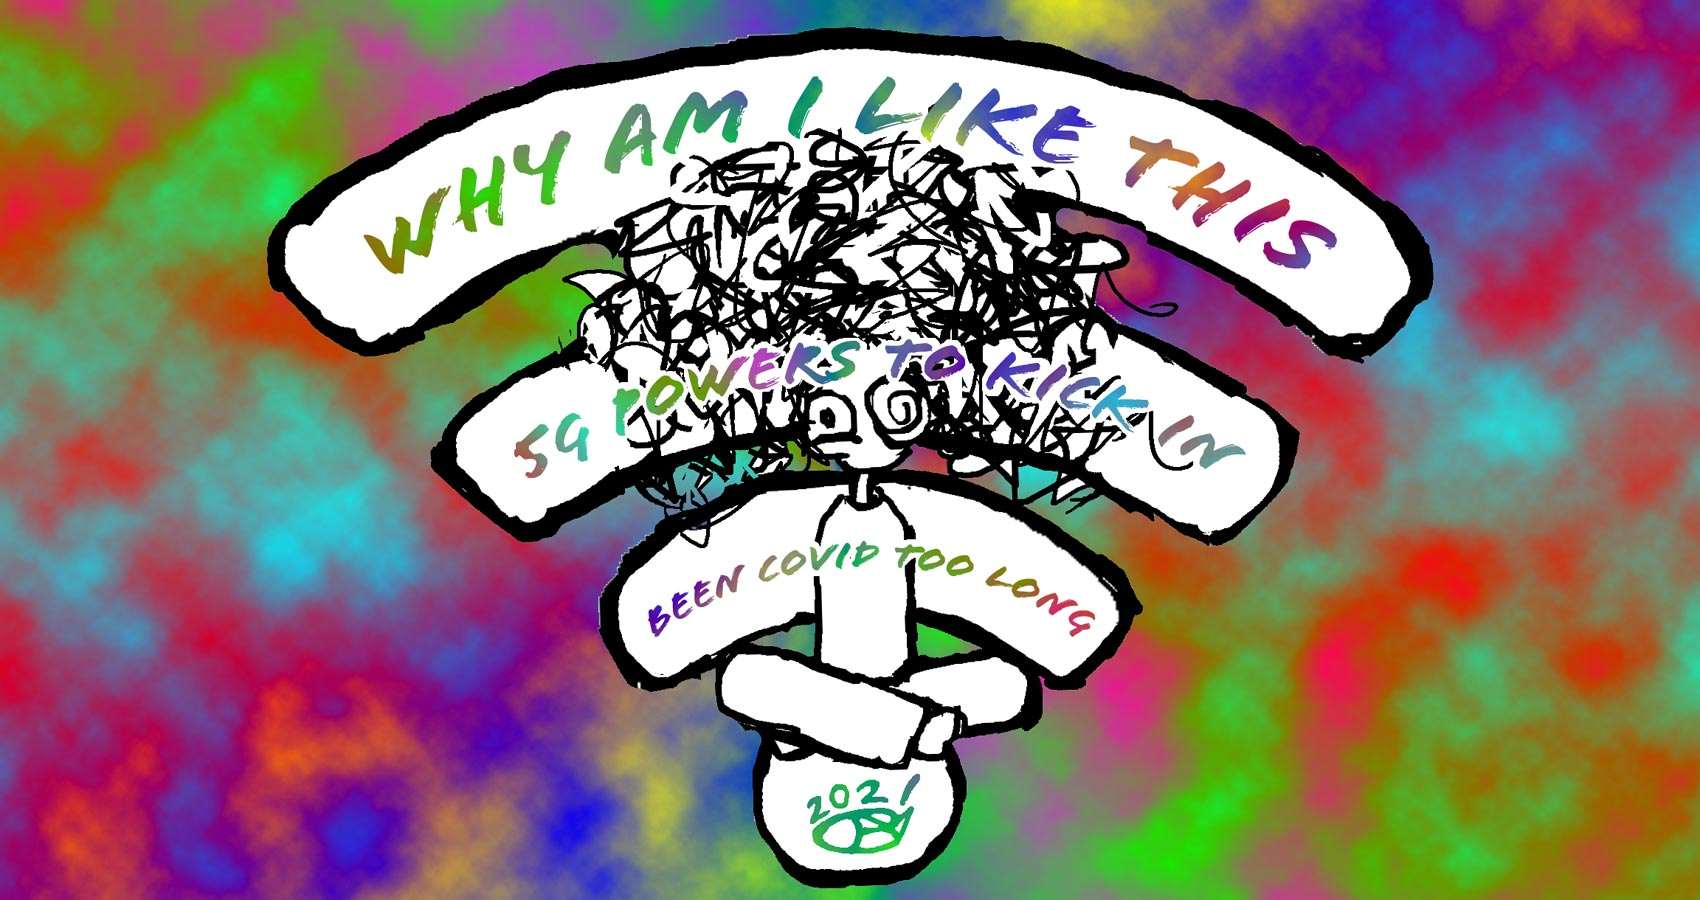 Why Am I Like This?, a haiku by Robyn MacKinnon at Spillwords.com